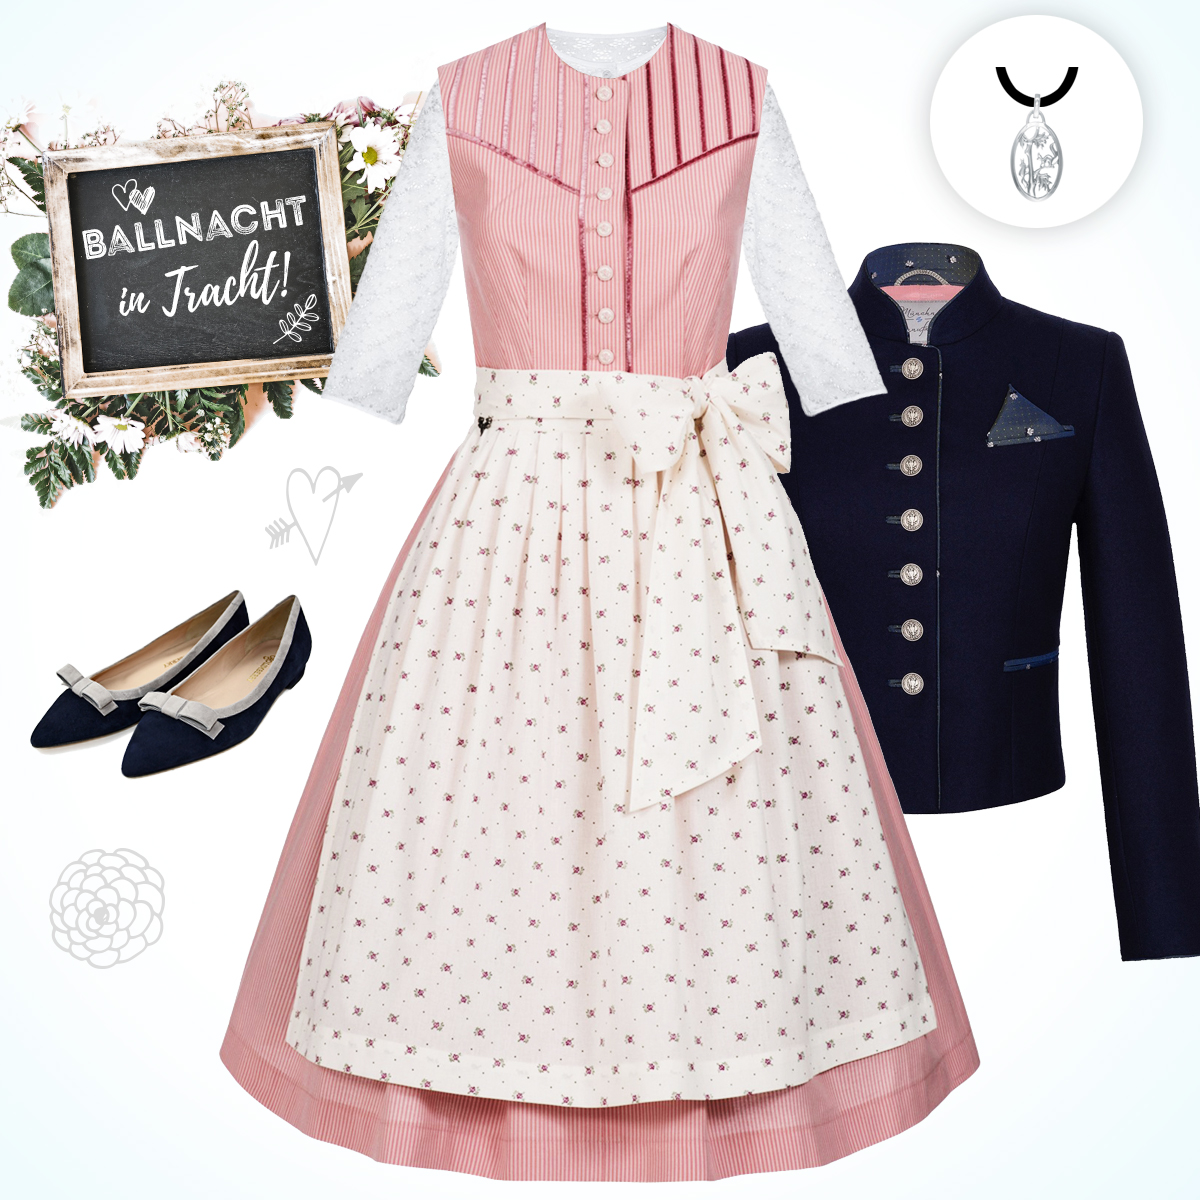 FB-Winterball-Outfit-02